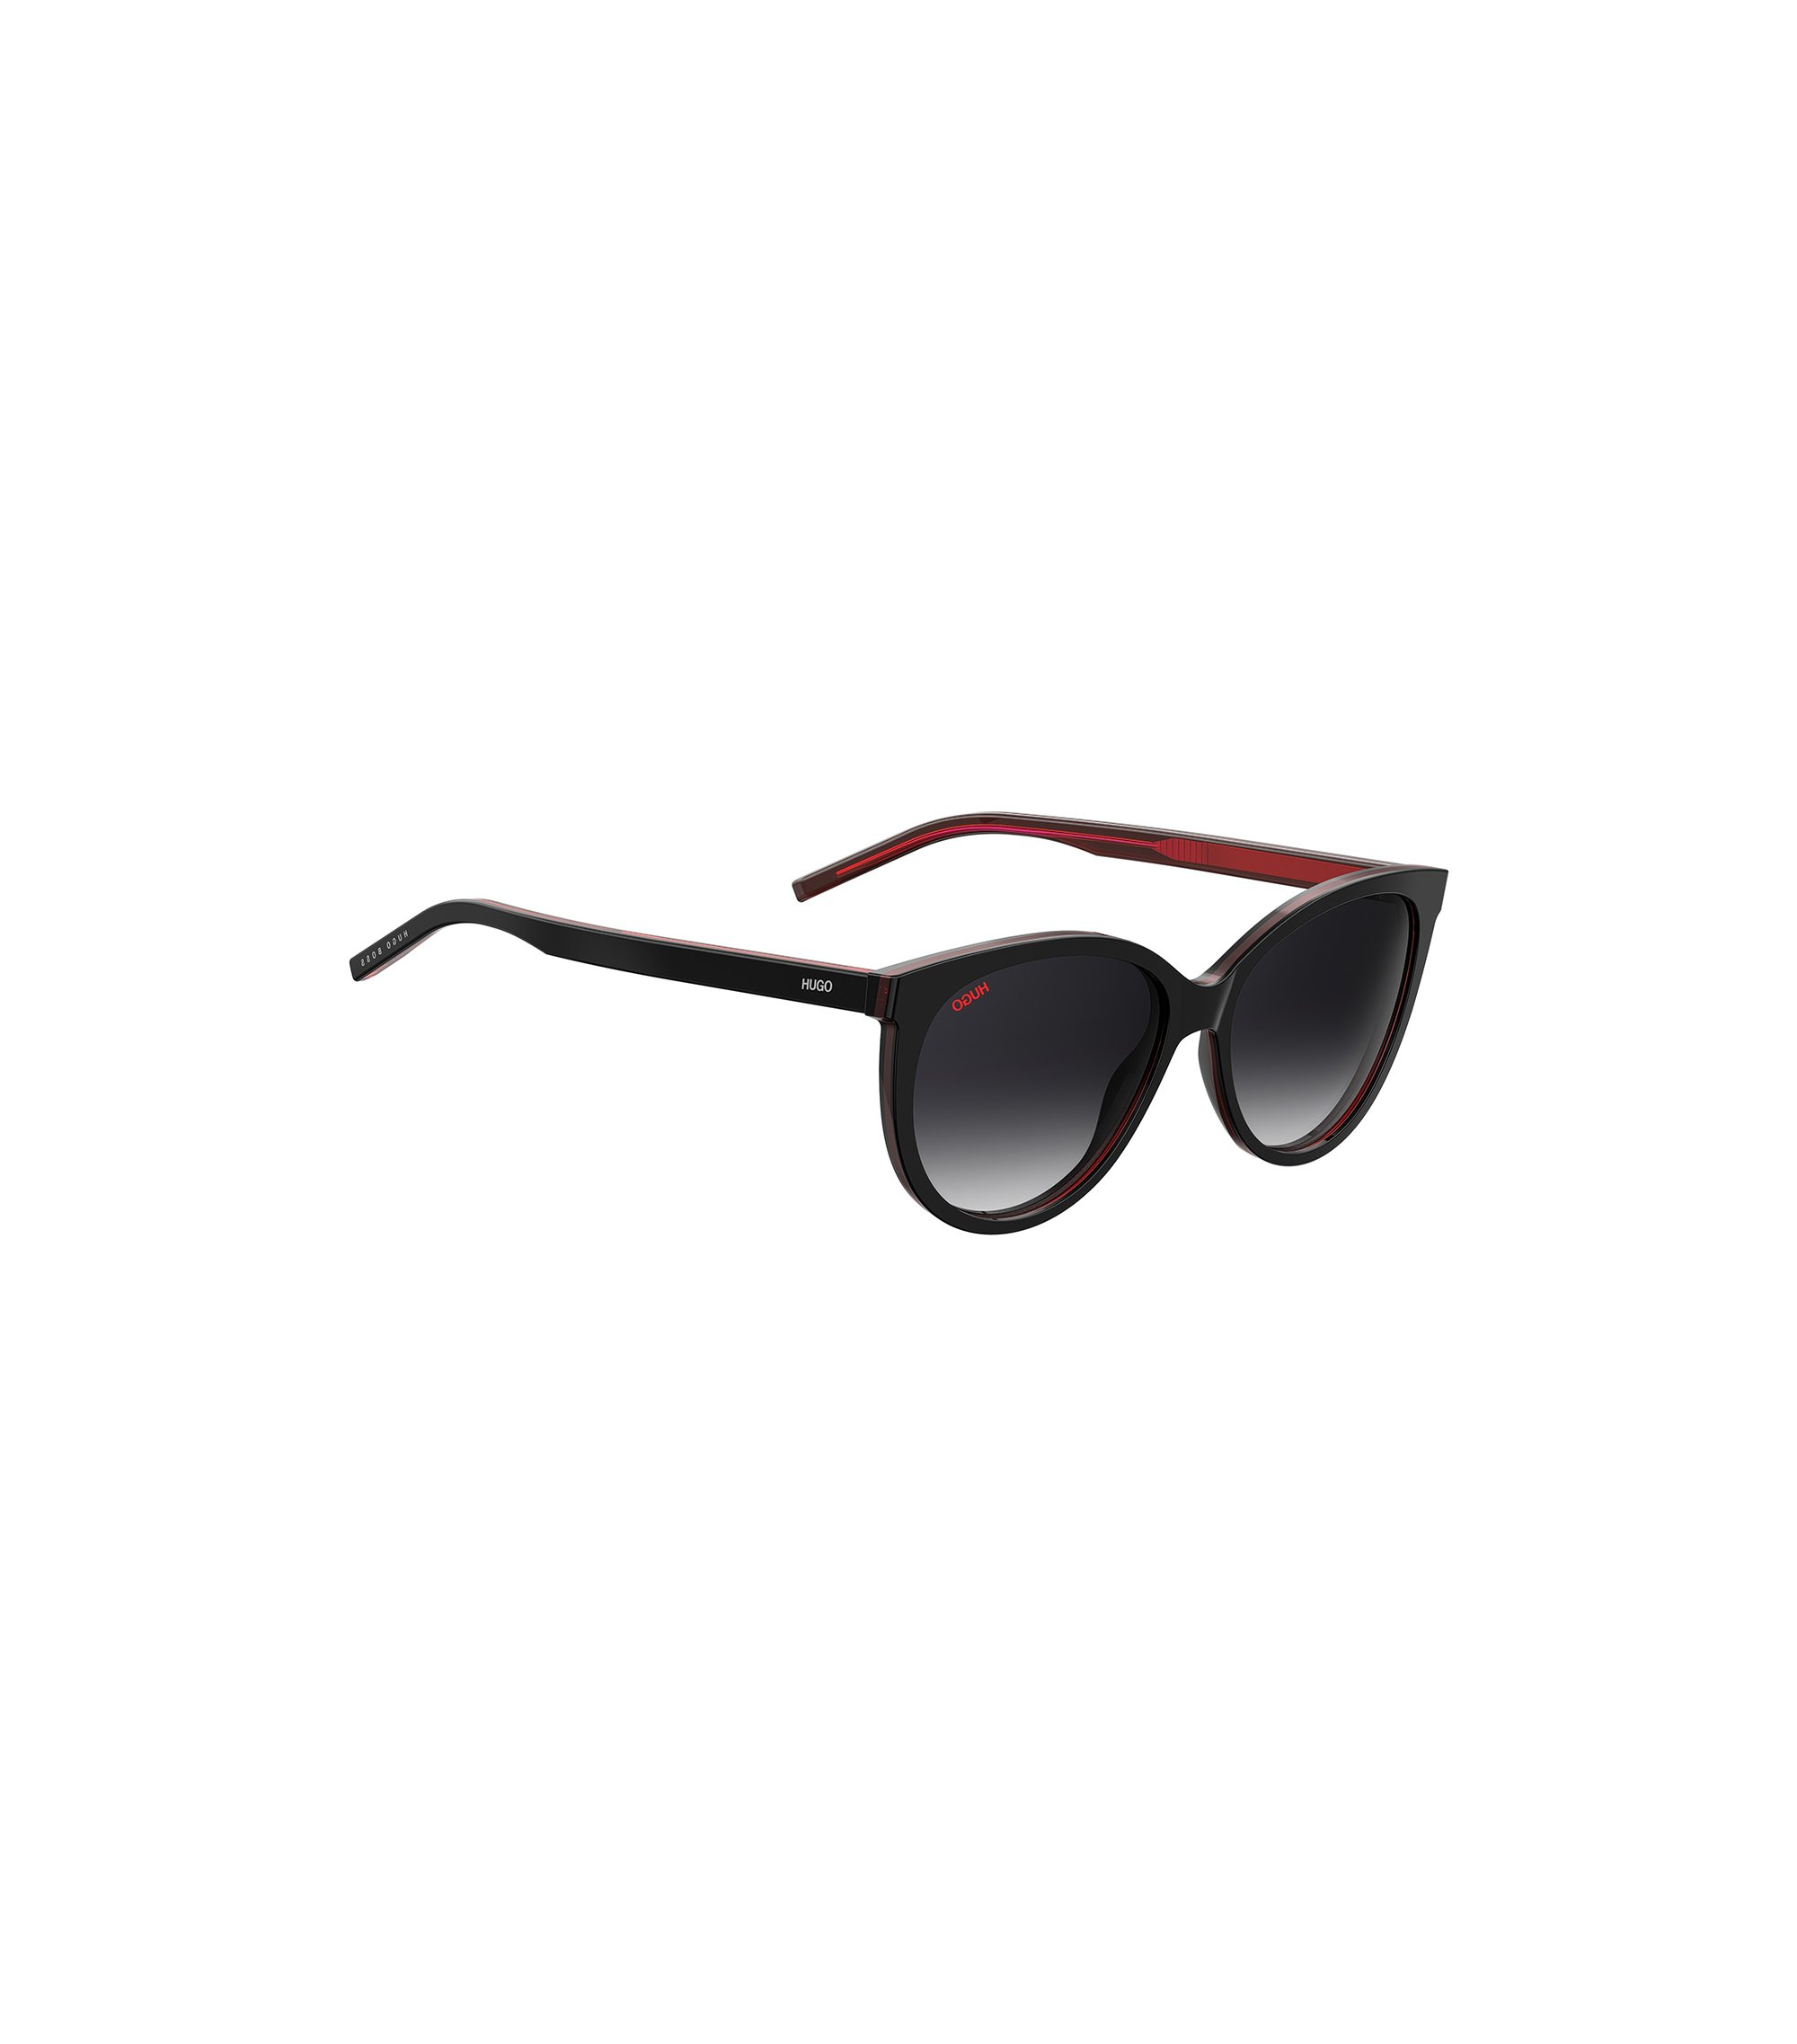 Reverse-logo sunglasses in dark-red acetate, Black